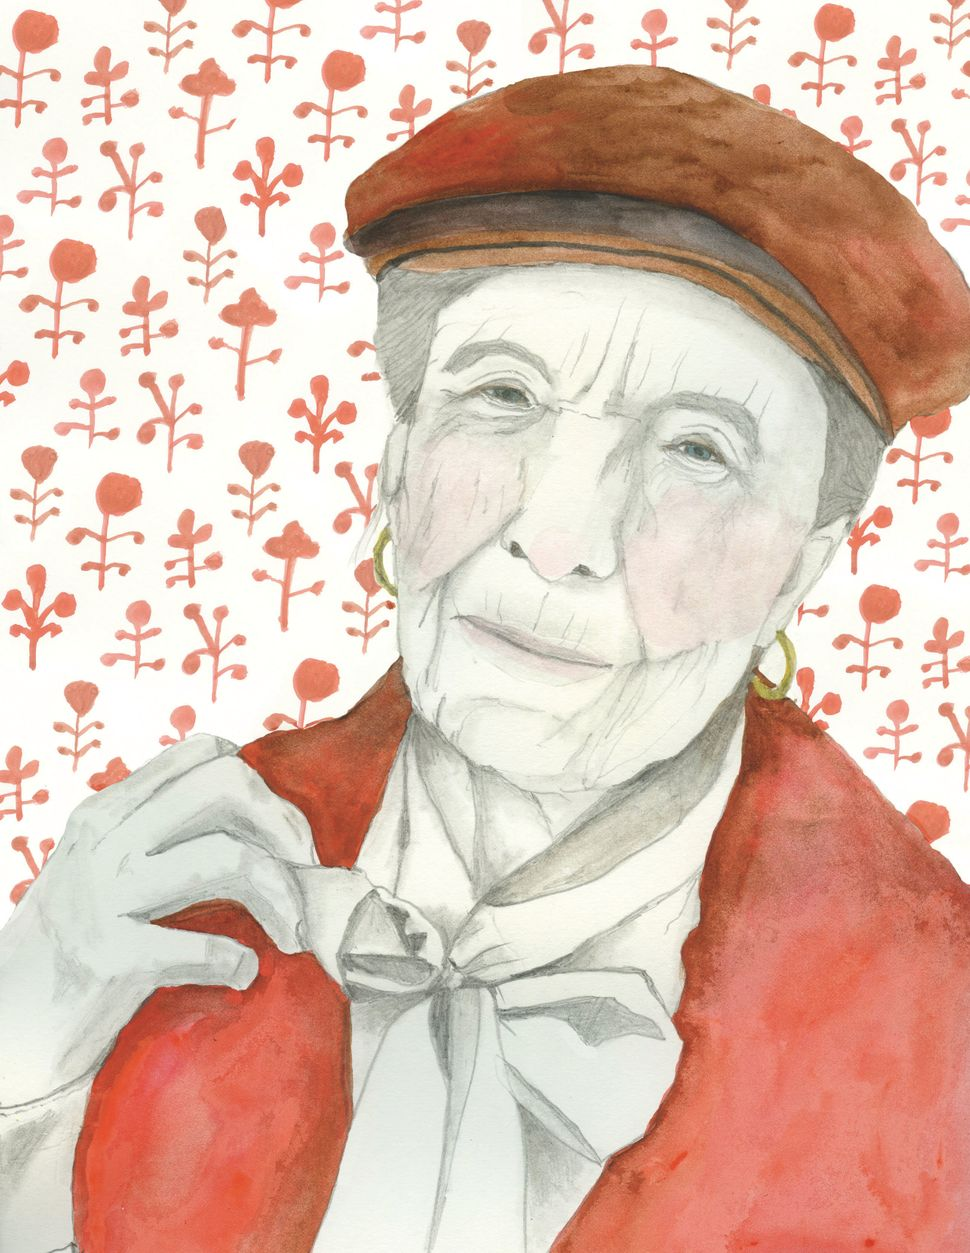 "<a href=""http://www.huffingtonpost.com/2014/12/25/louise-bourgeois-birthday_n_6373616.html"">Read more about Louise Bourg"